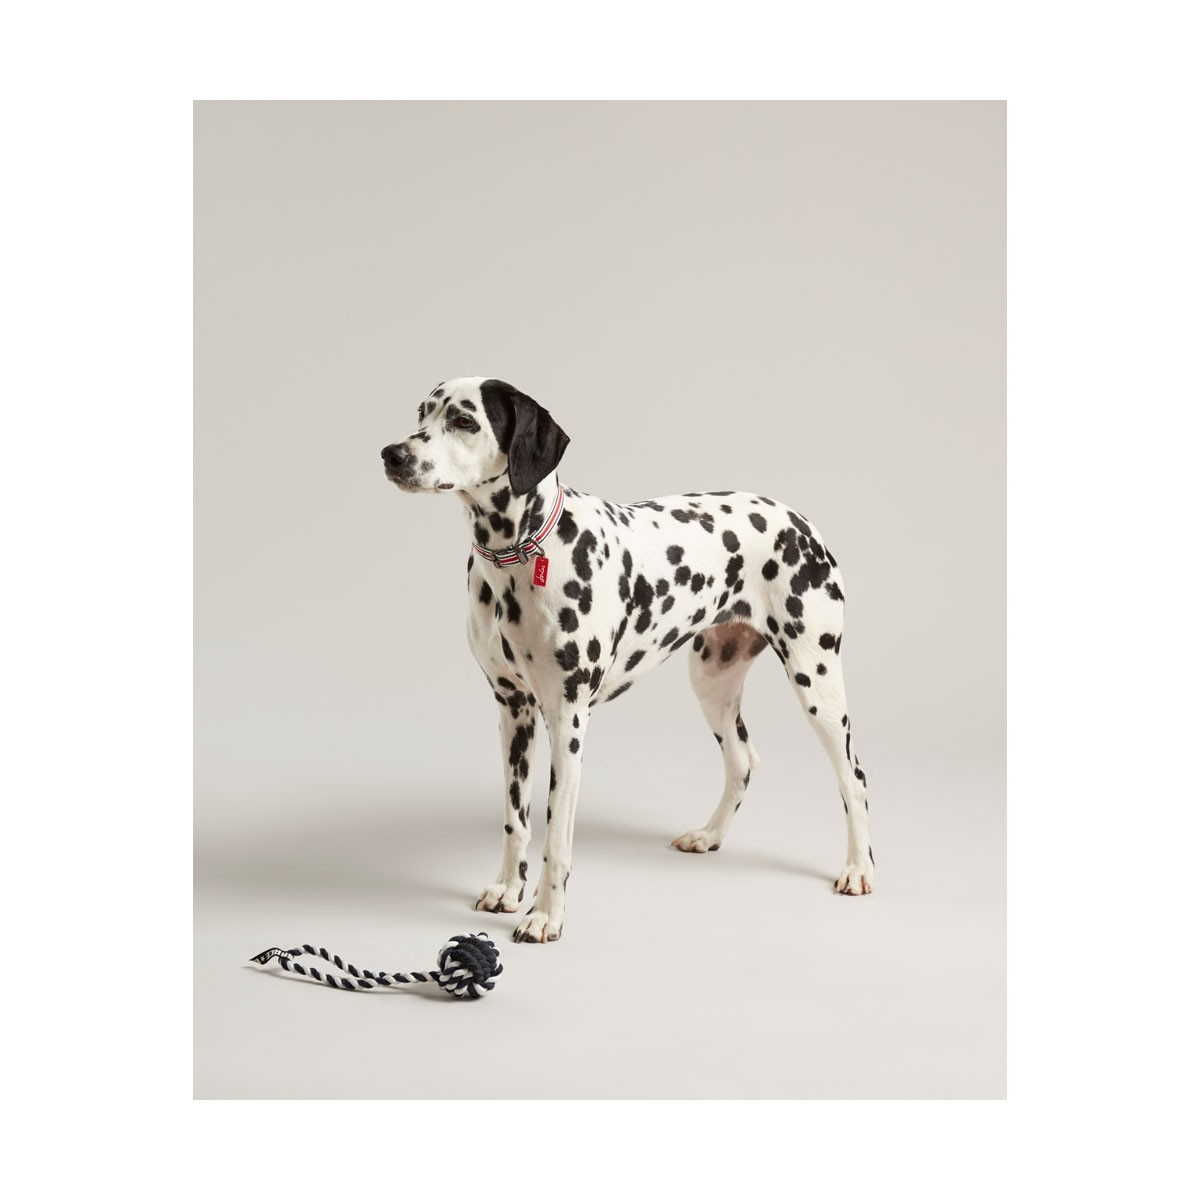 Joules Rubber and Rope Dog Toy  - Thomas Irving's equestrian and accessories store  Joules Rubber and Rope Dog Toy